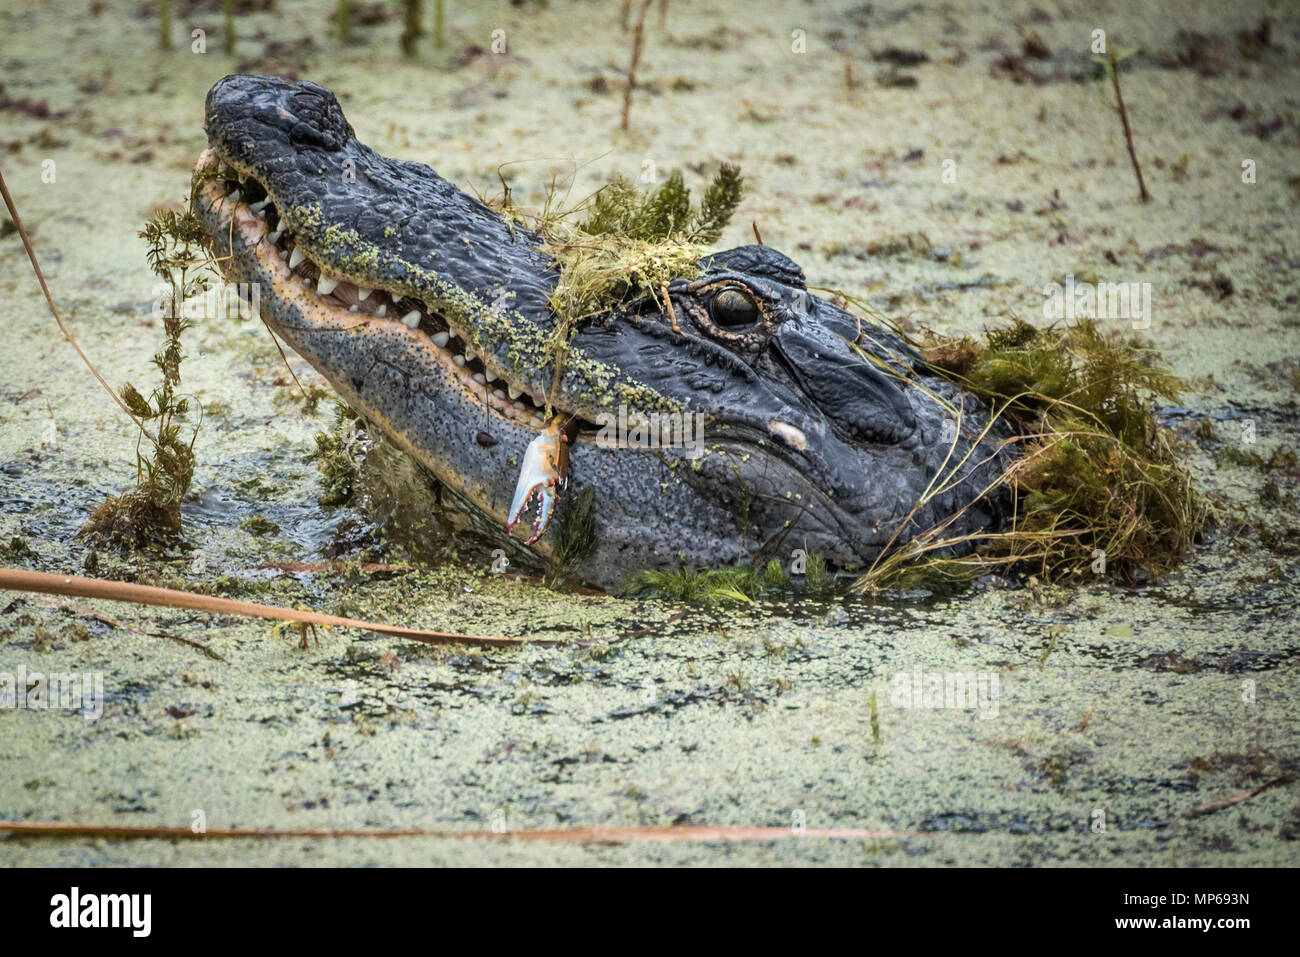 Florida alligator lifts his head above algae covered water to eat a freshly caught crab in the Guana River at Ponte Vedra Beach along Florida A1A. - Stock Image